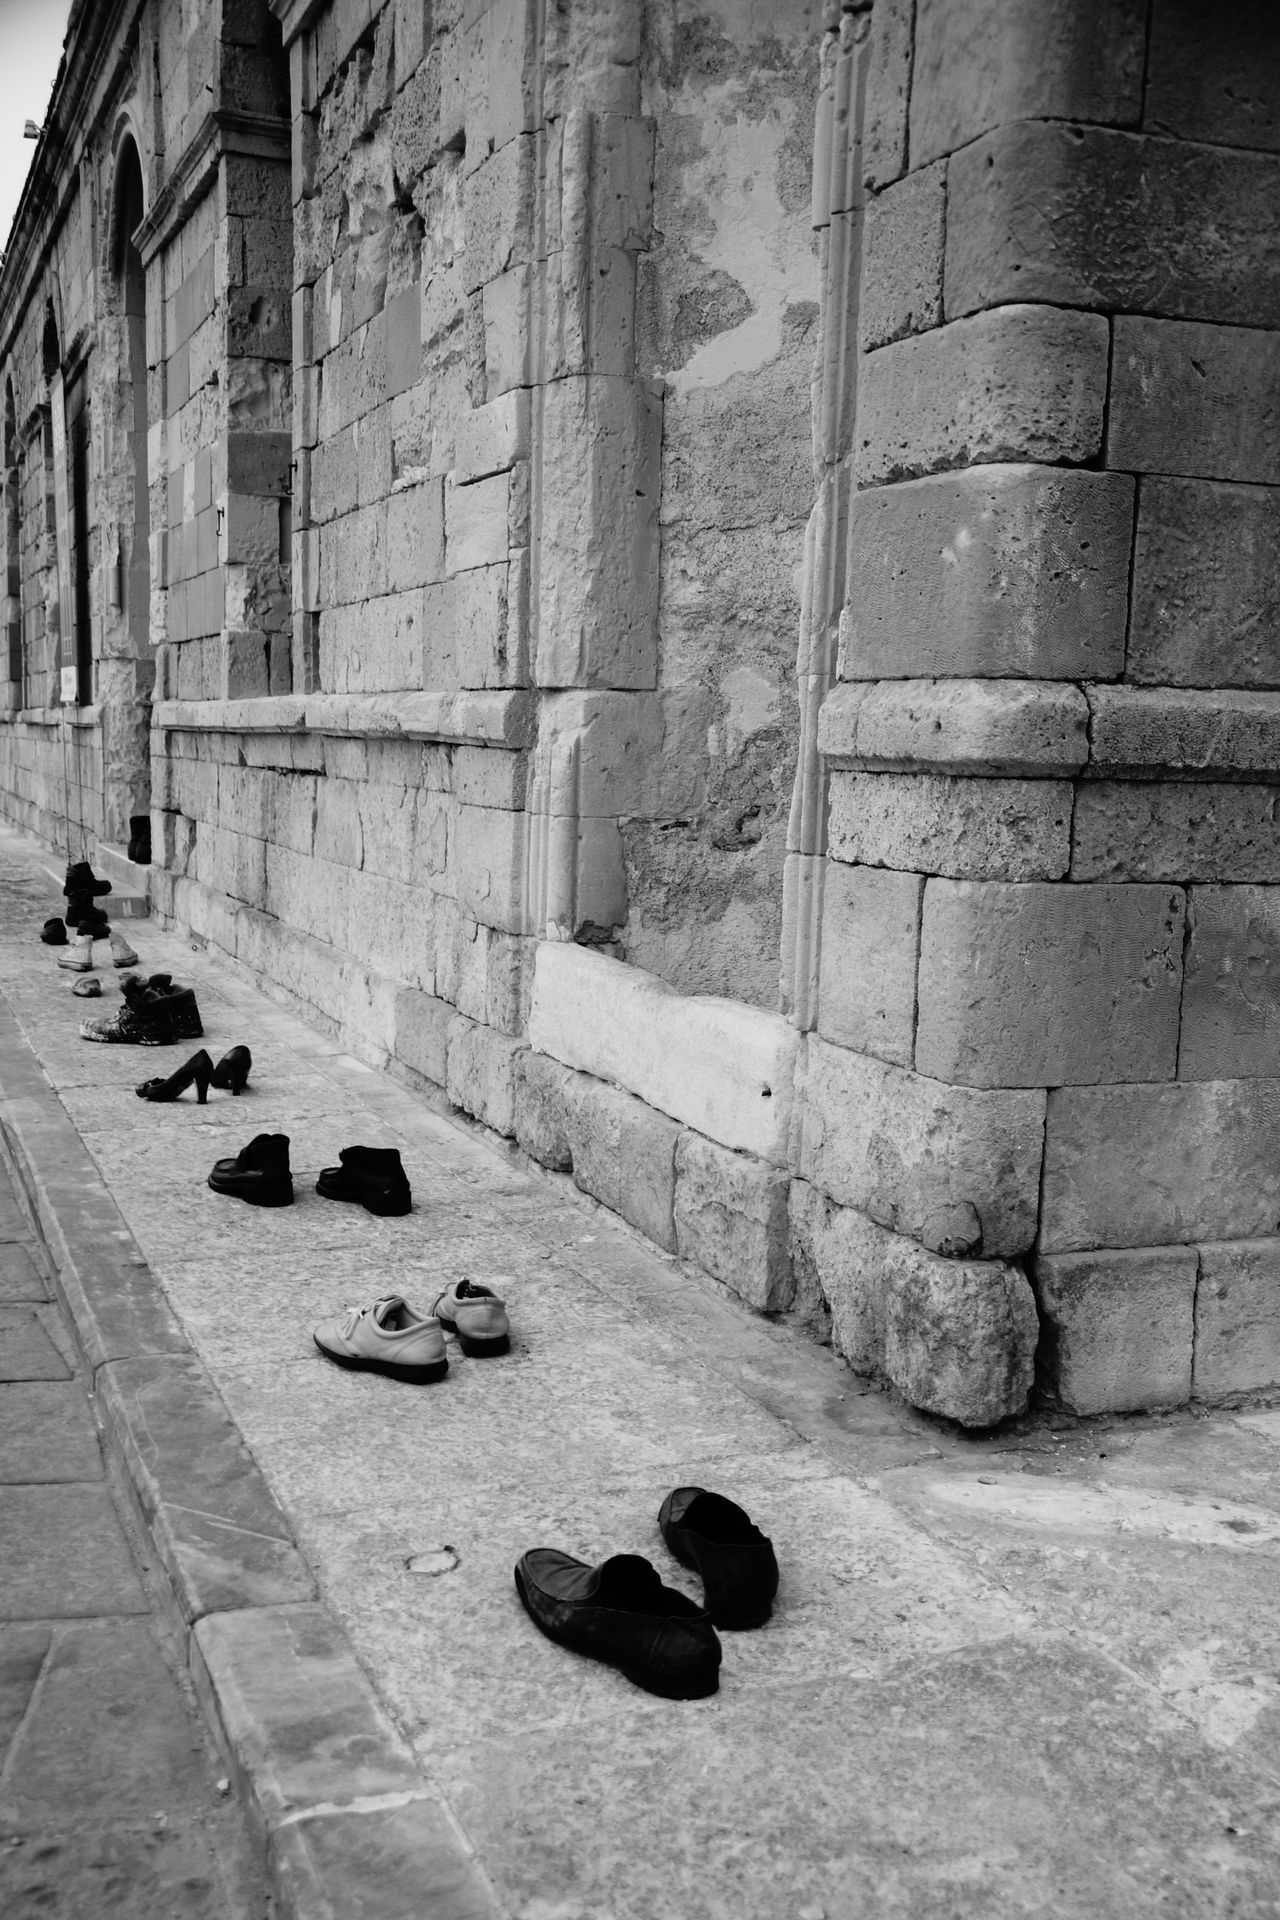 Amazing mesage Amazing Ancient Architecture Ancient Building Architecture Art Art Is Everywhere Black & White Black And White Row Rows Of Things RWO Shoes Standing Standing In Line The Architect - 2017 EyeEm Awards The Great Outdoors - 2017 EyeEm Awards The Street Photographer - 2017 EyeEm Awards